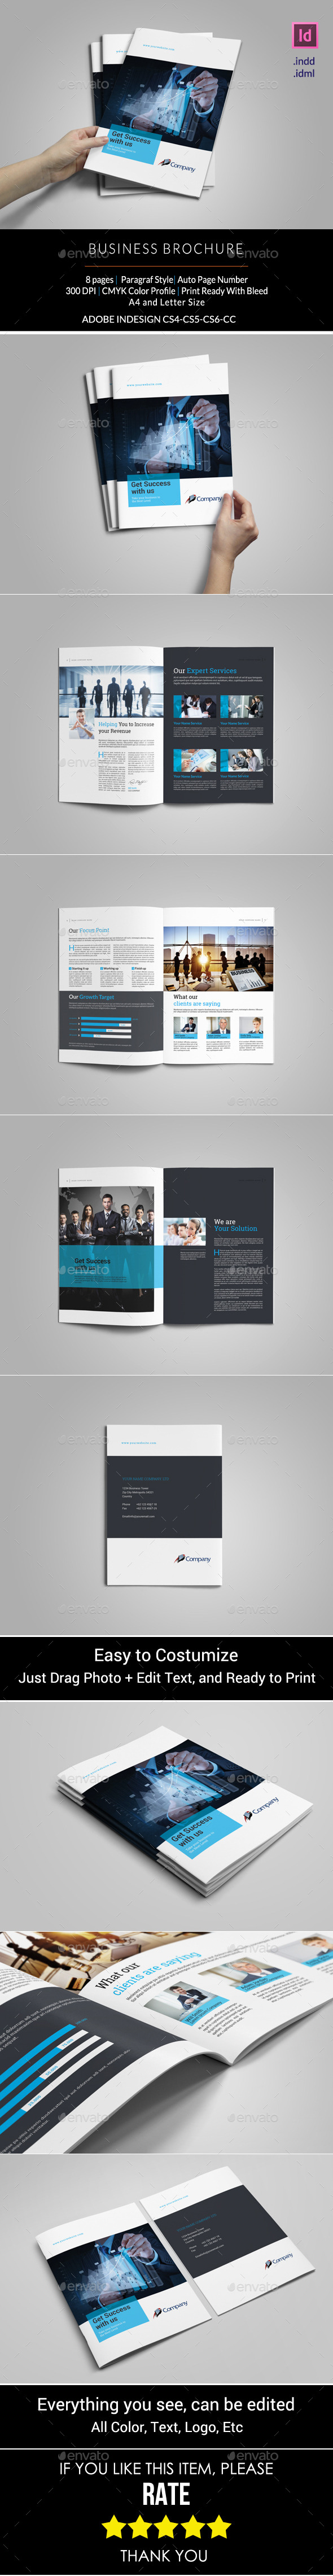 GraphicRiver Business Brochure Template 11094366